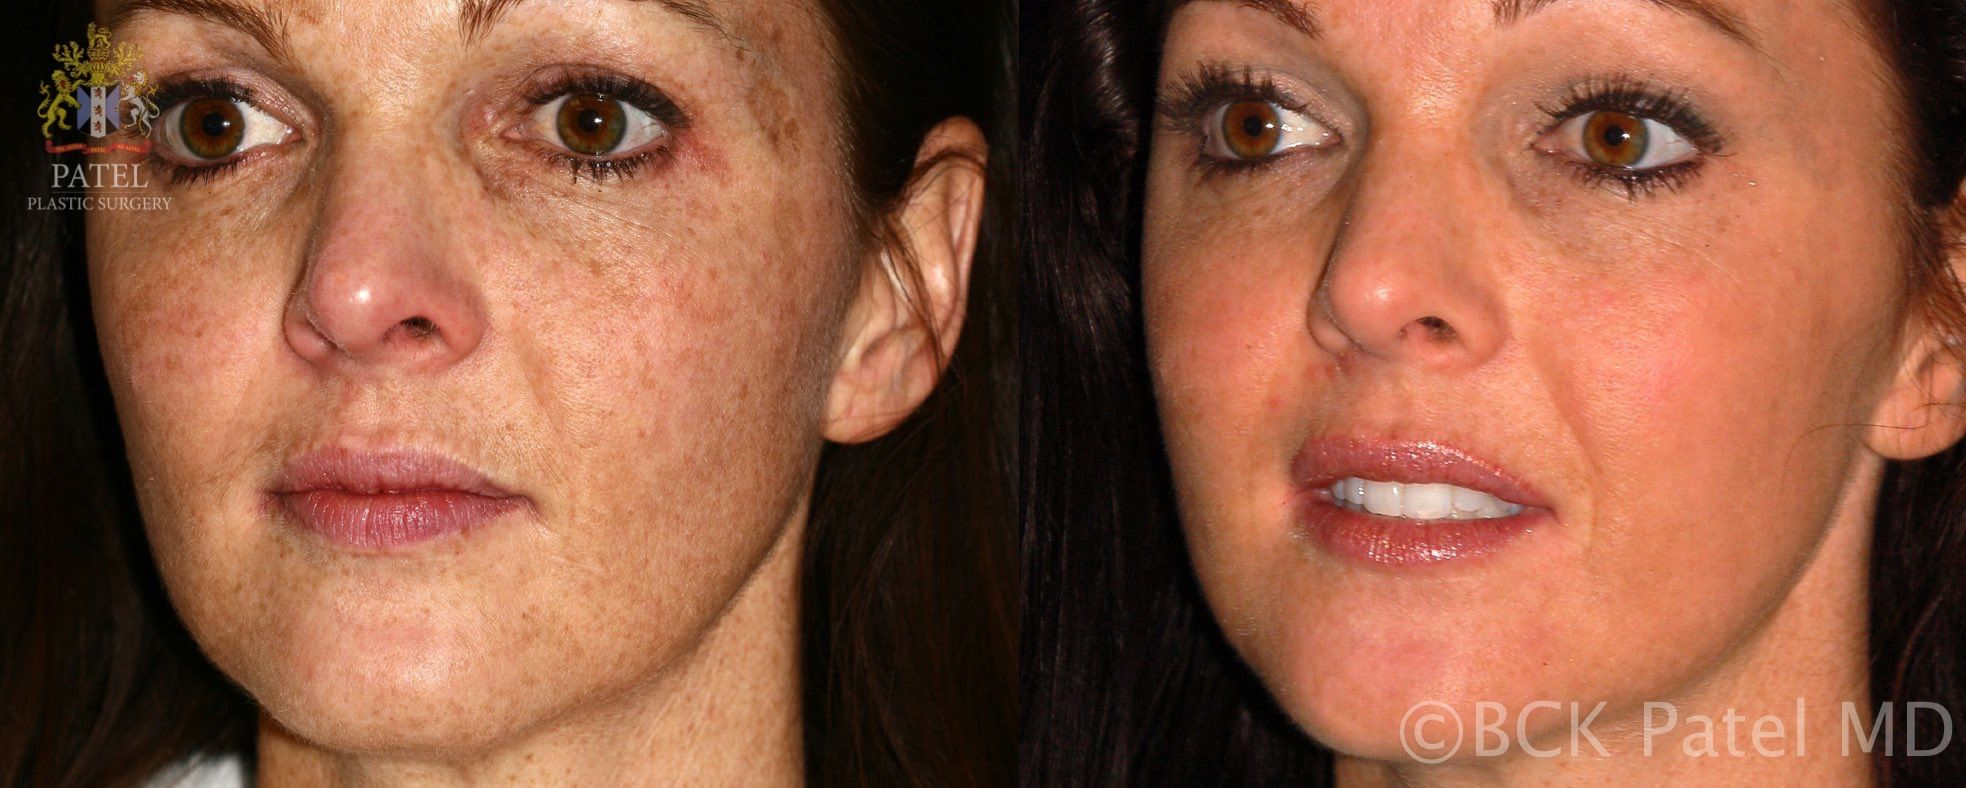 englishsurgeon.com Results of face fotofacial treatments by Dr. BCK Patel MD, FRCS, Salt Lake City, St George